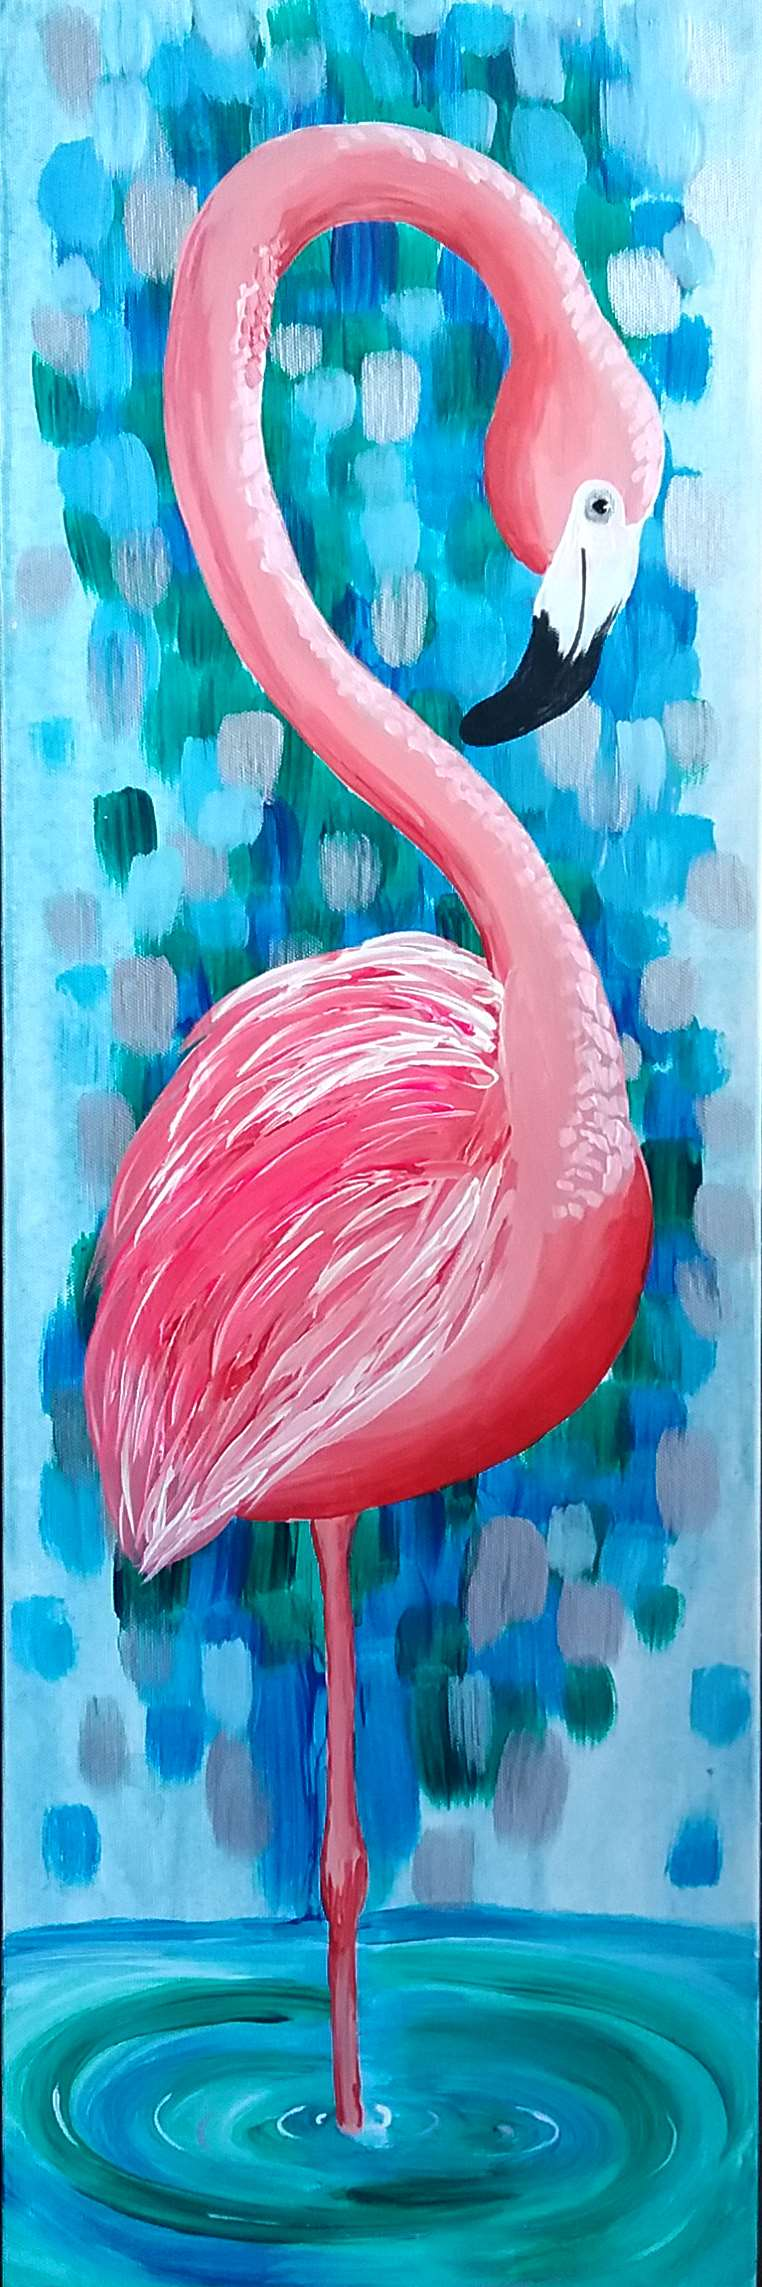 Mimosa Afternoon. Flamingo Amore